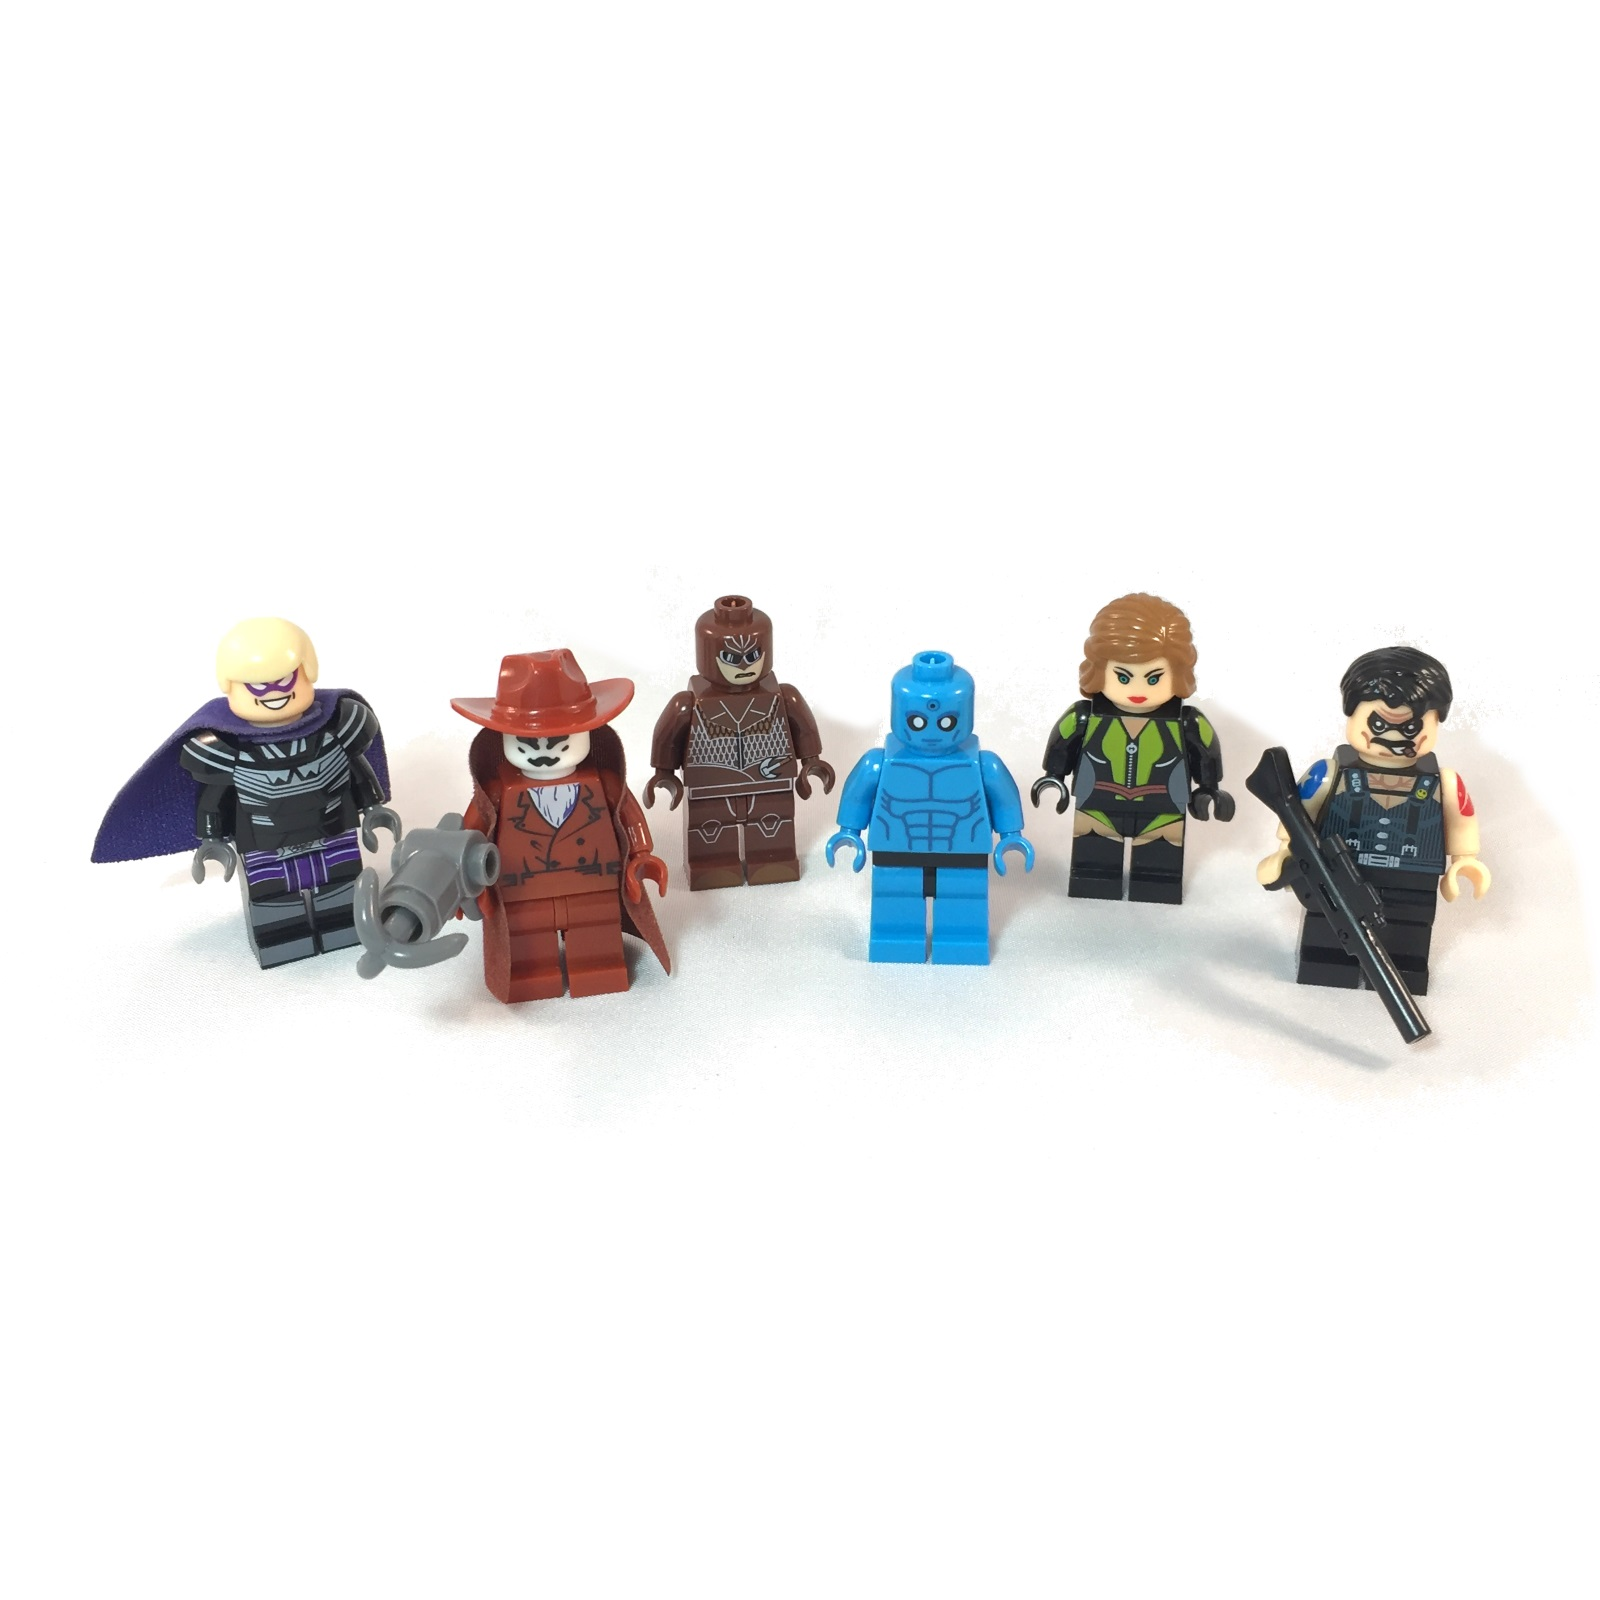 Watchmen LEGO Minfigs - Set of 6